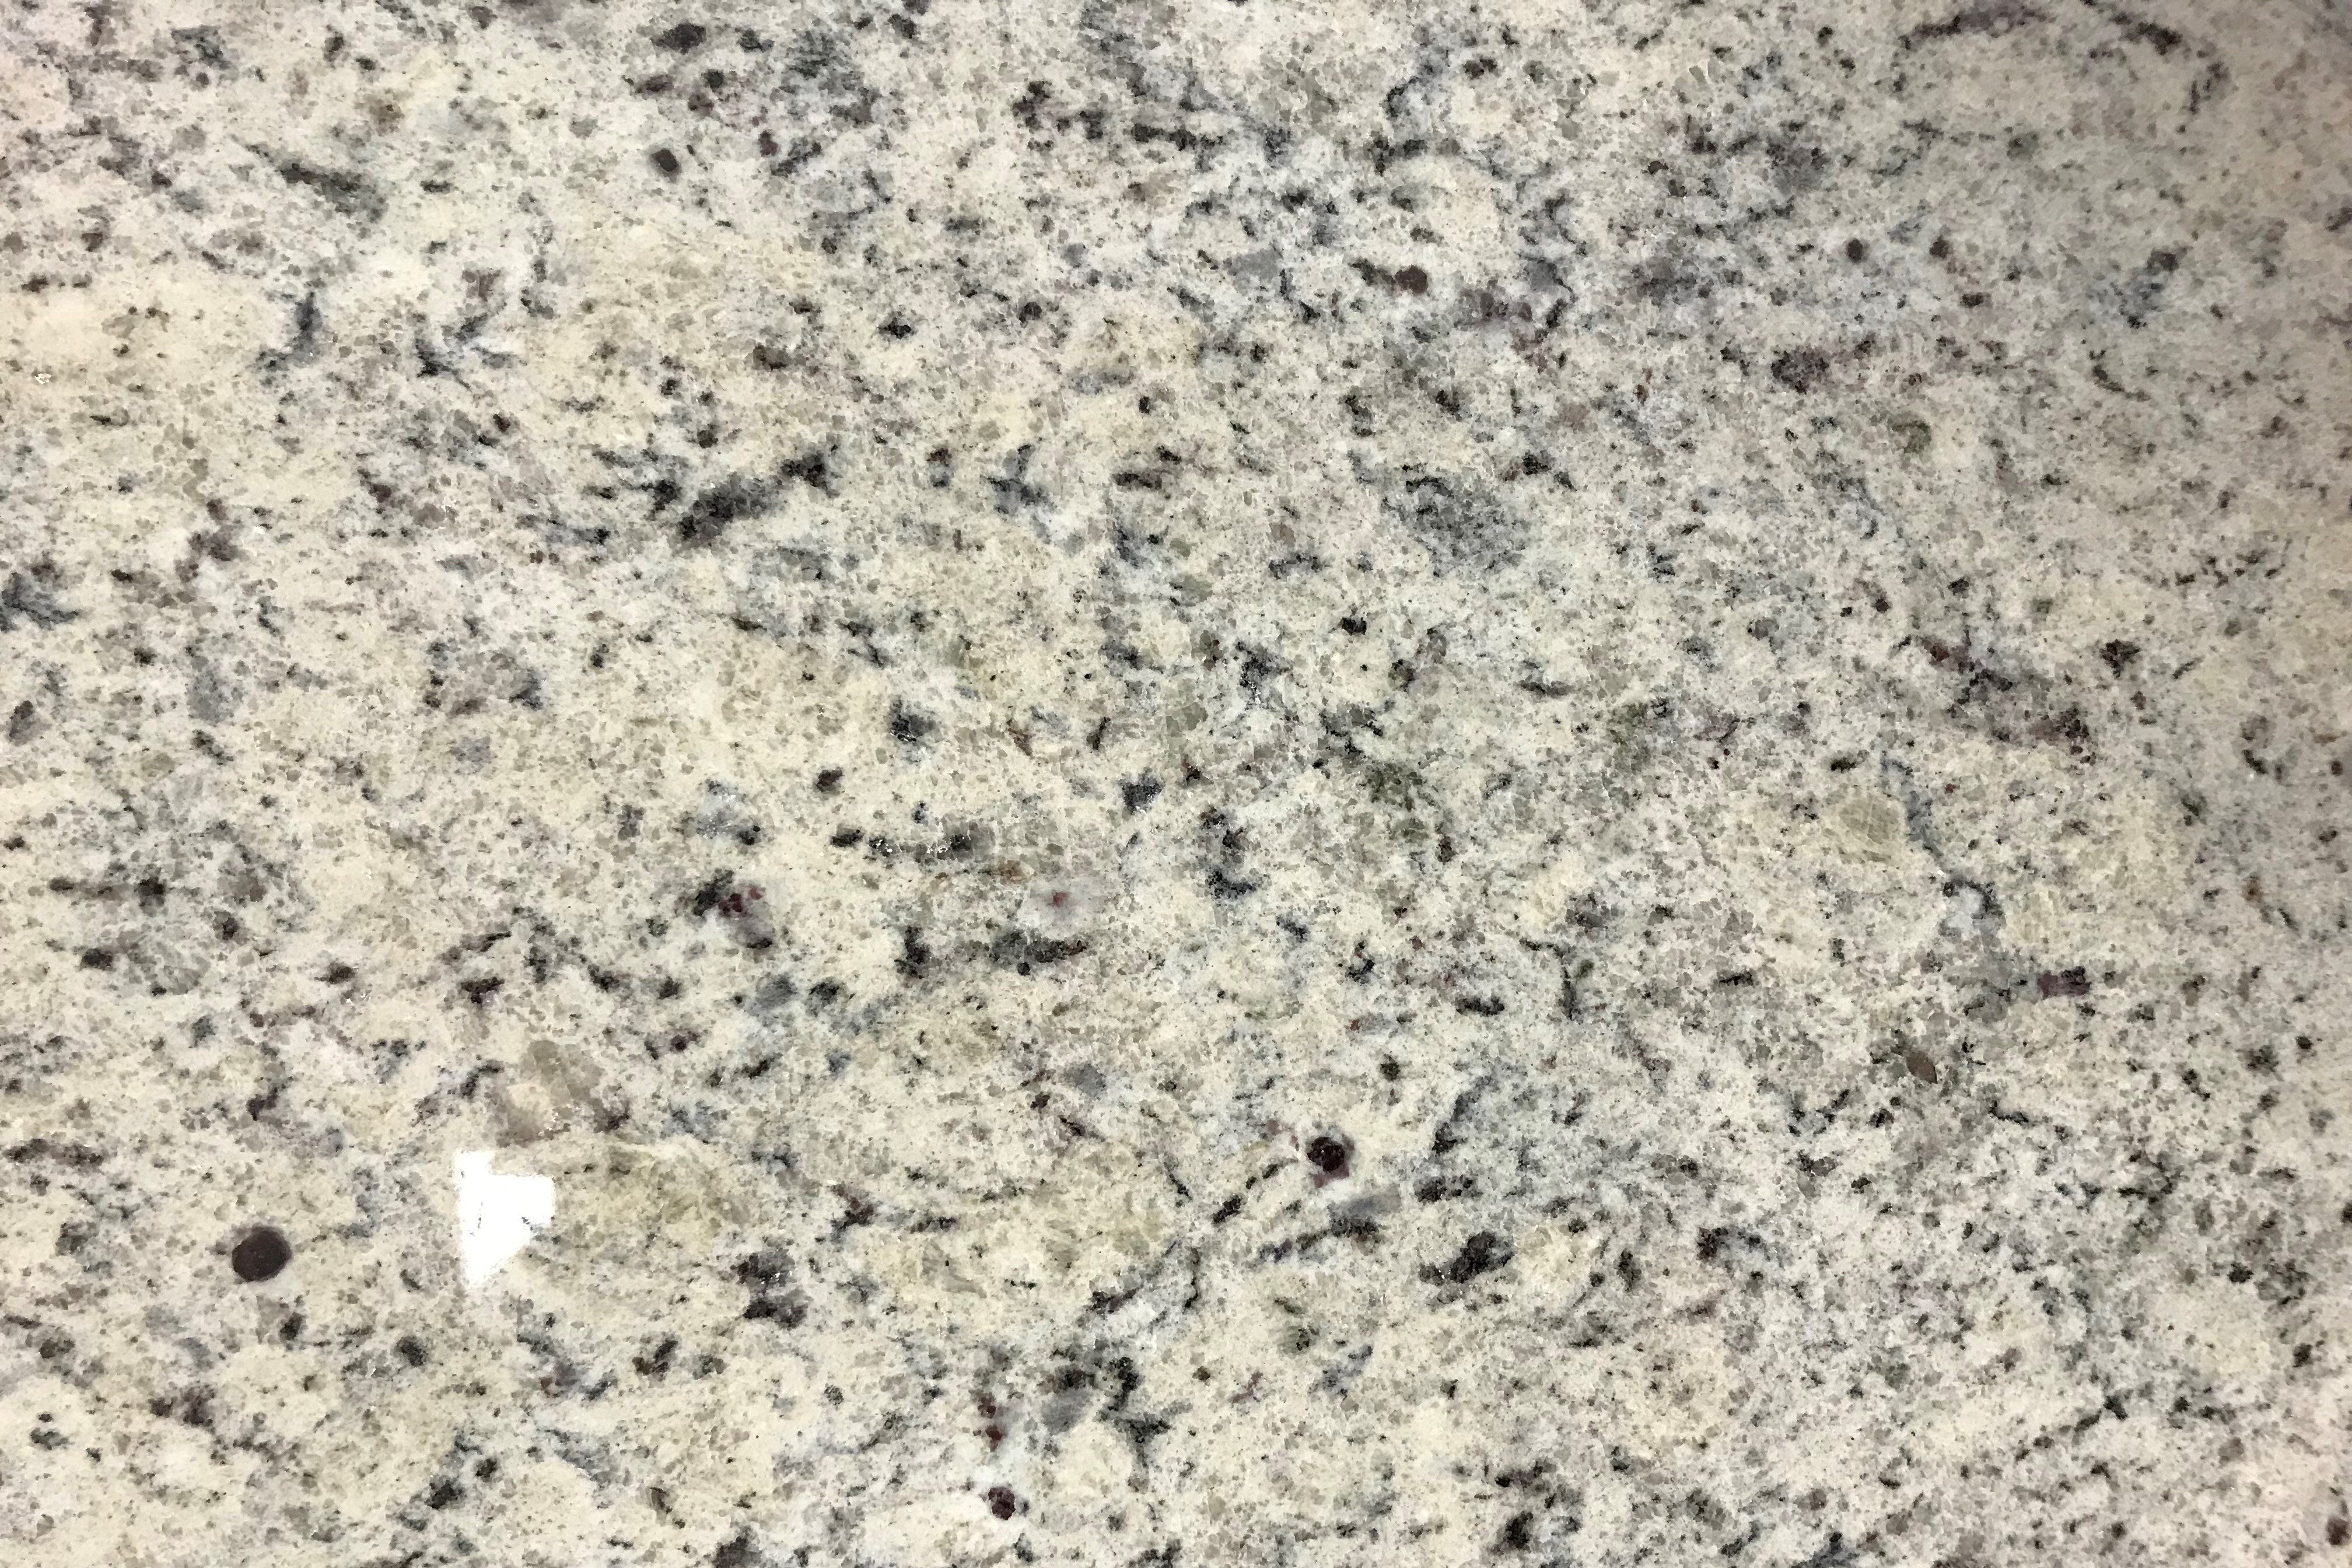 Dallas White Granite Countertops, Bath Countertops, Bar Countertops by TC Discount Granite